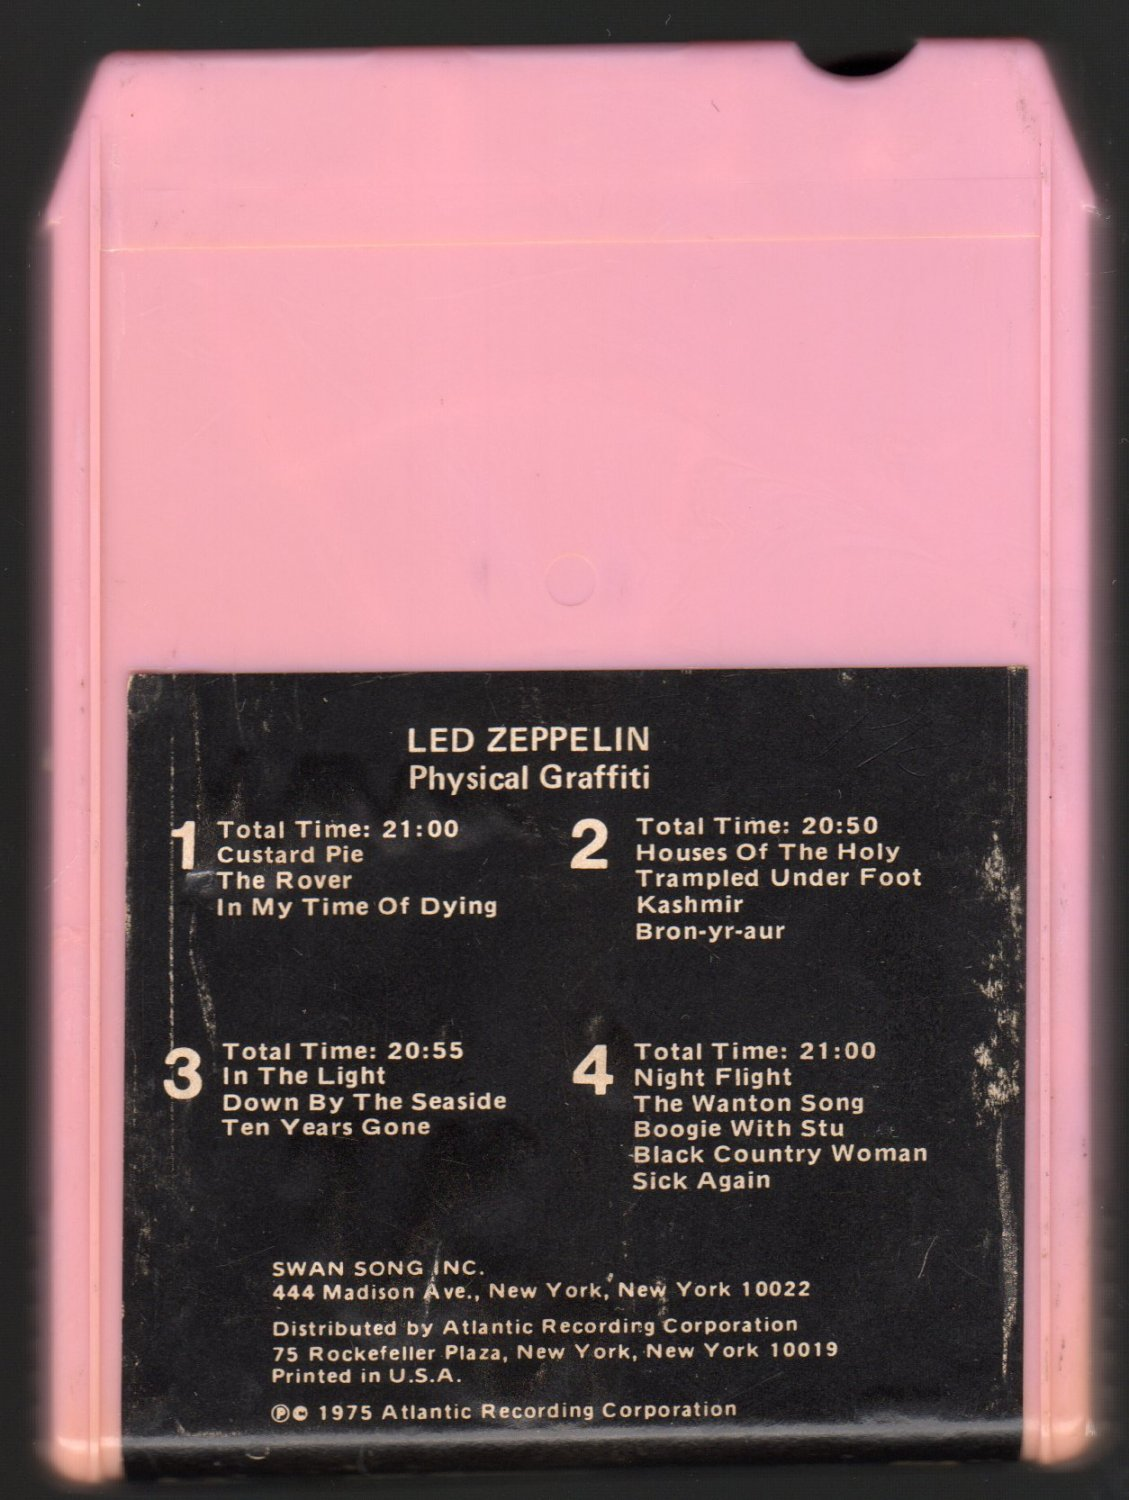 Led Zeppelin - Physical Graffiti 1975 SWAN WB Double Play A4 8-TRACK TAPE